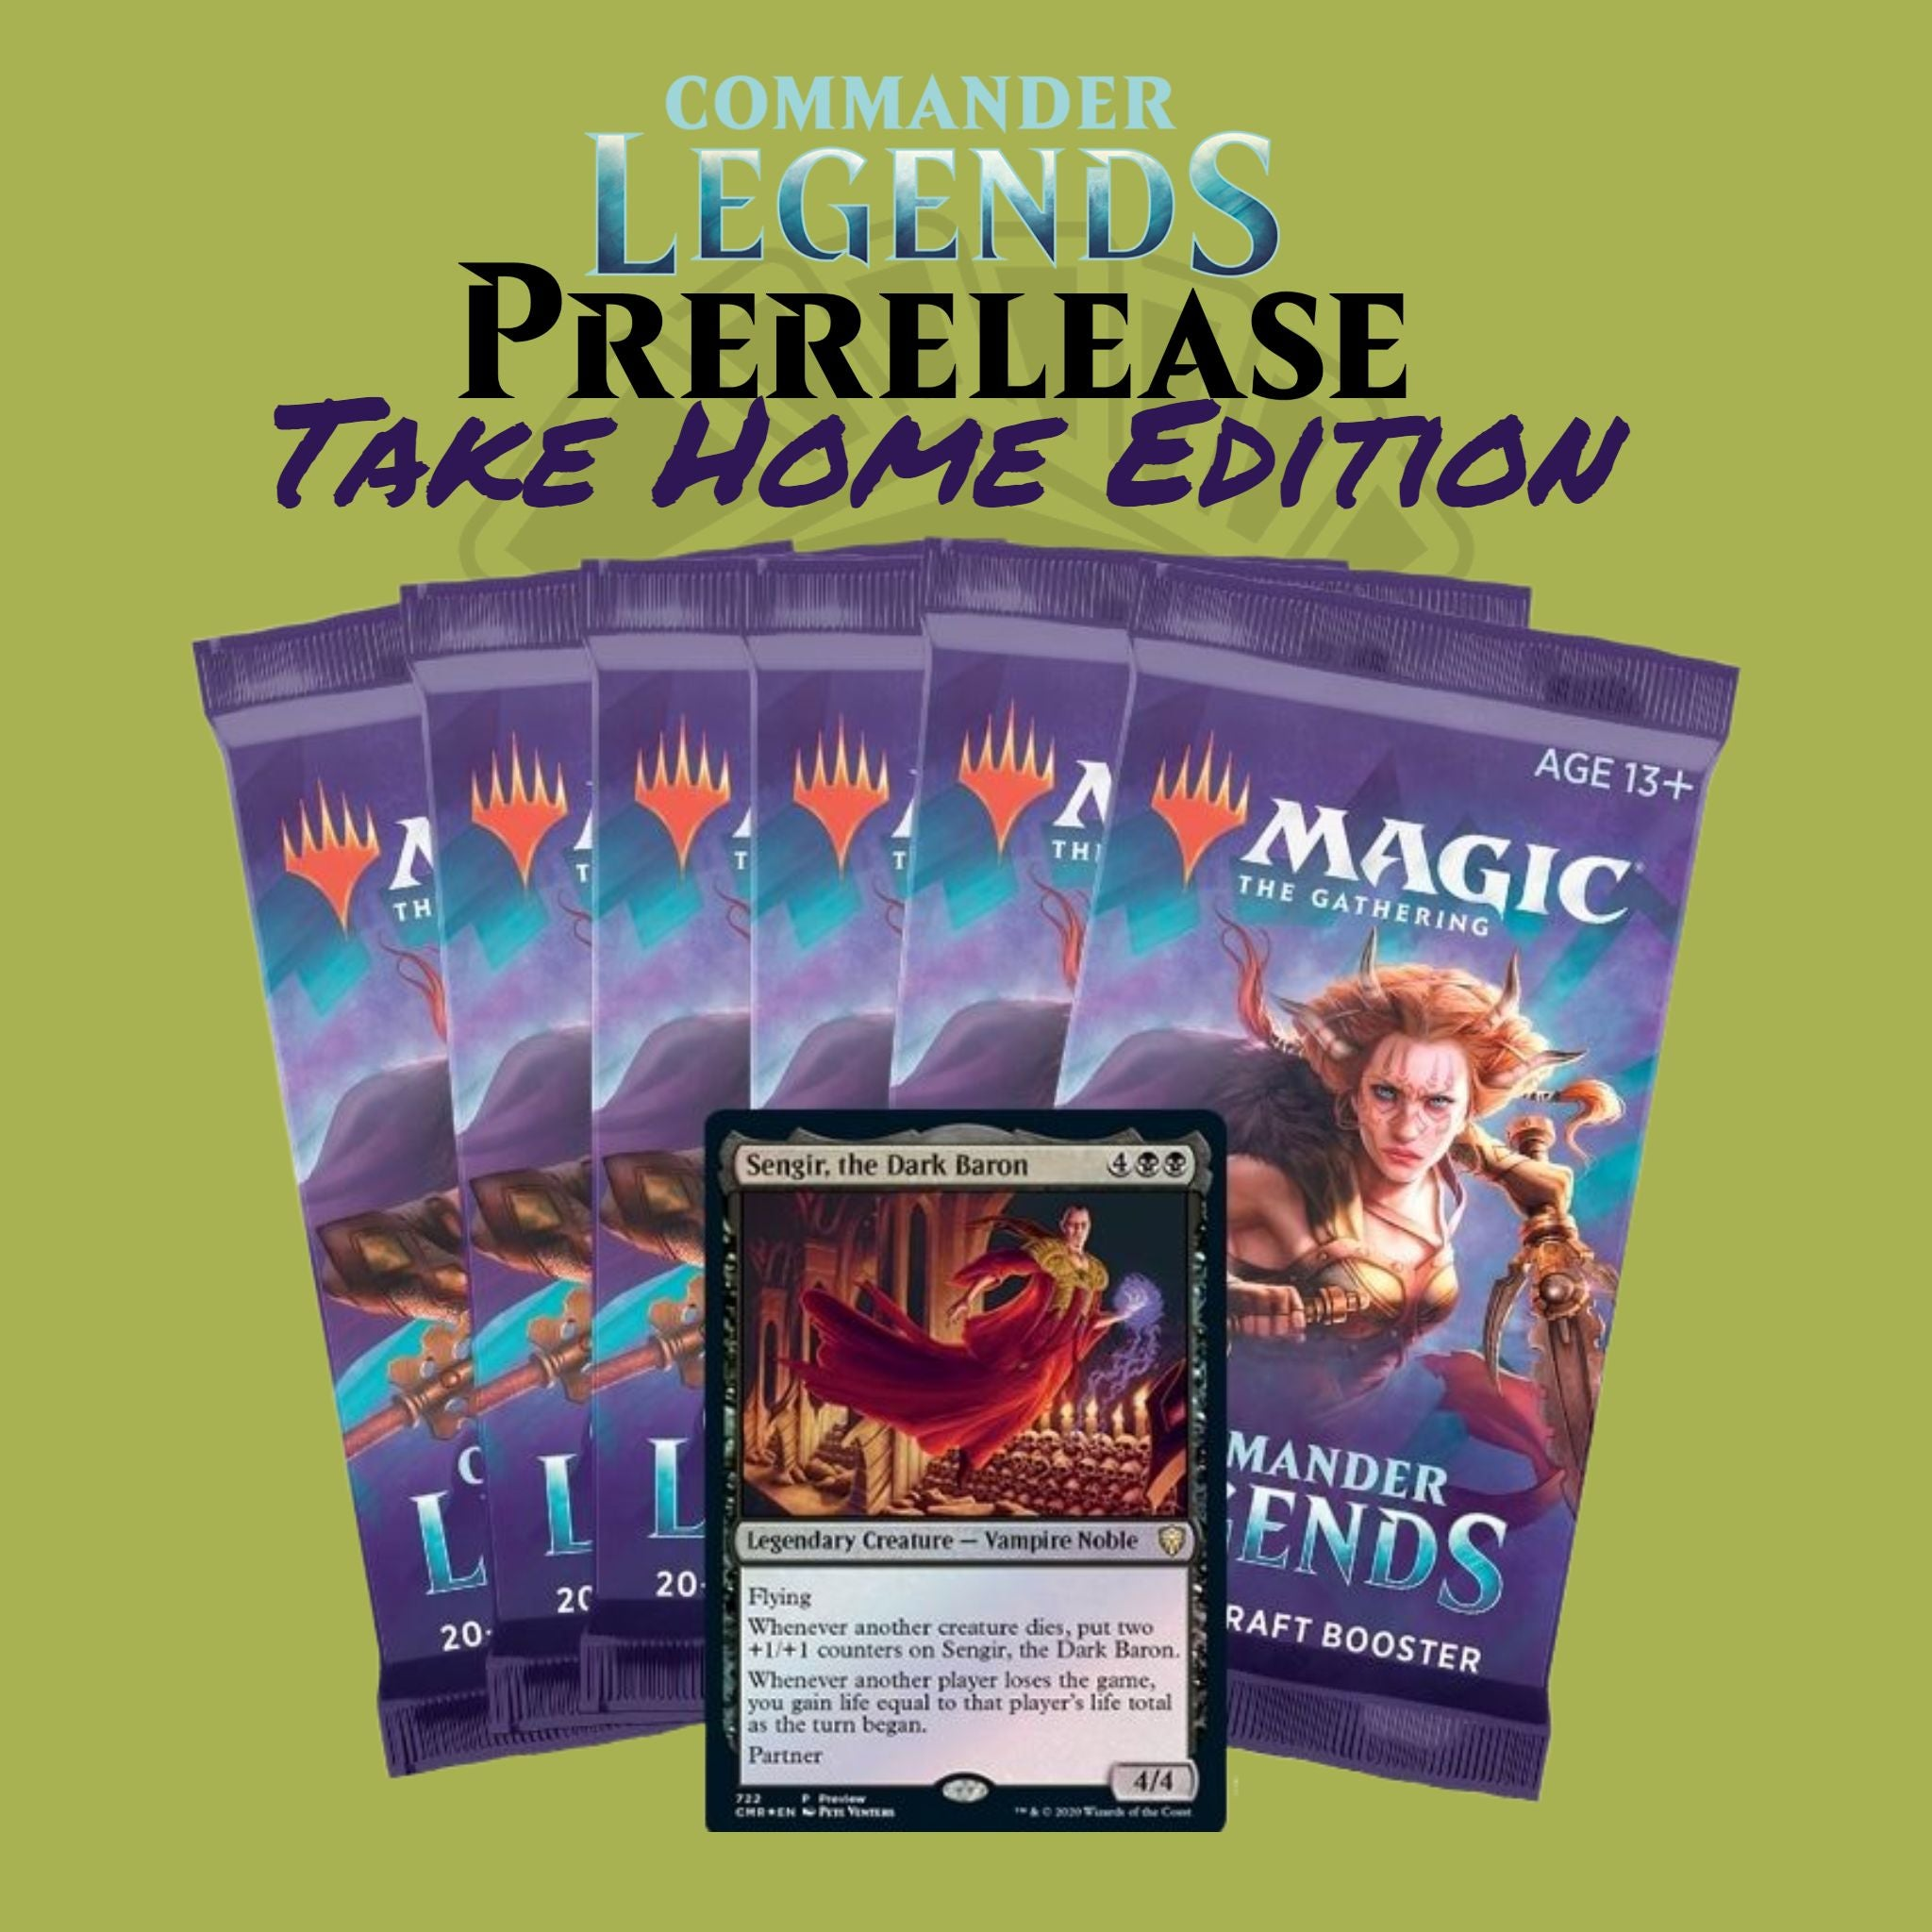 Commander Legends Take Home Prerelease kit | D20 Games